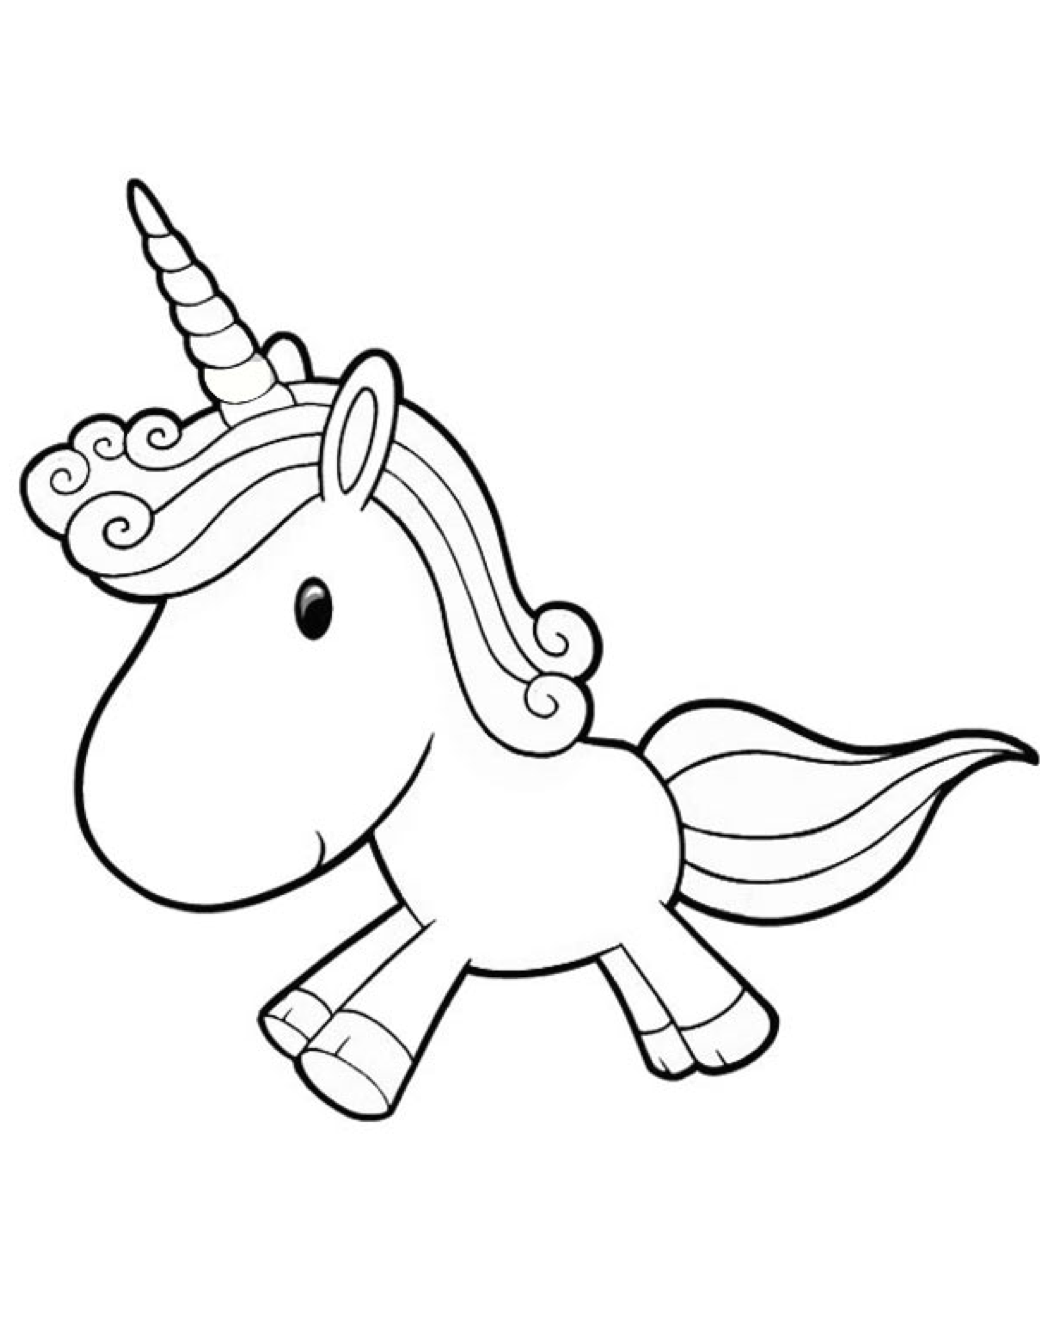 1040x1344 Cartoon Unicorn Coloring Page Amp Coloring Book